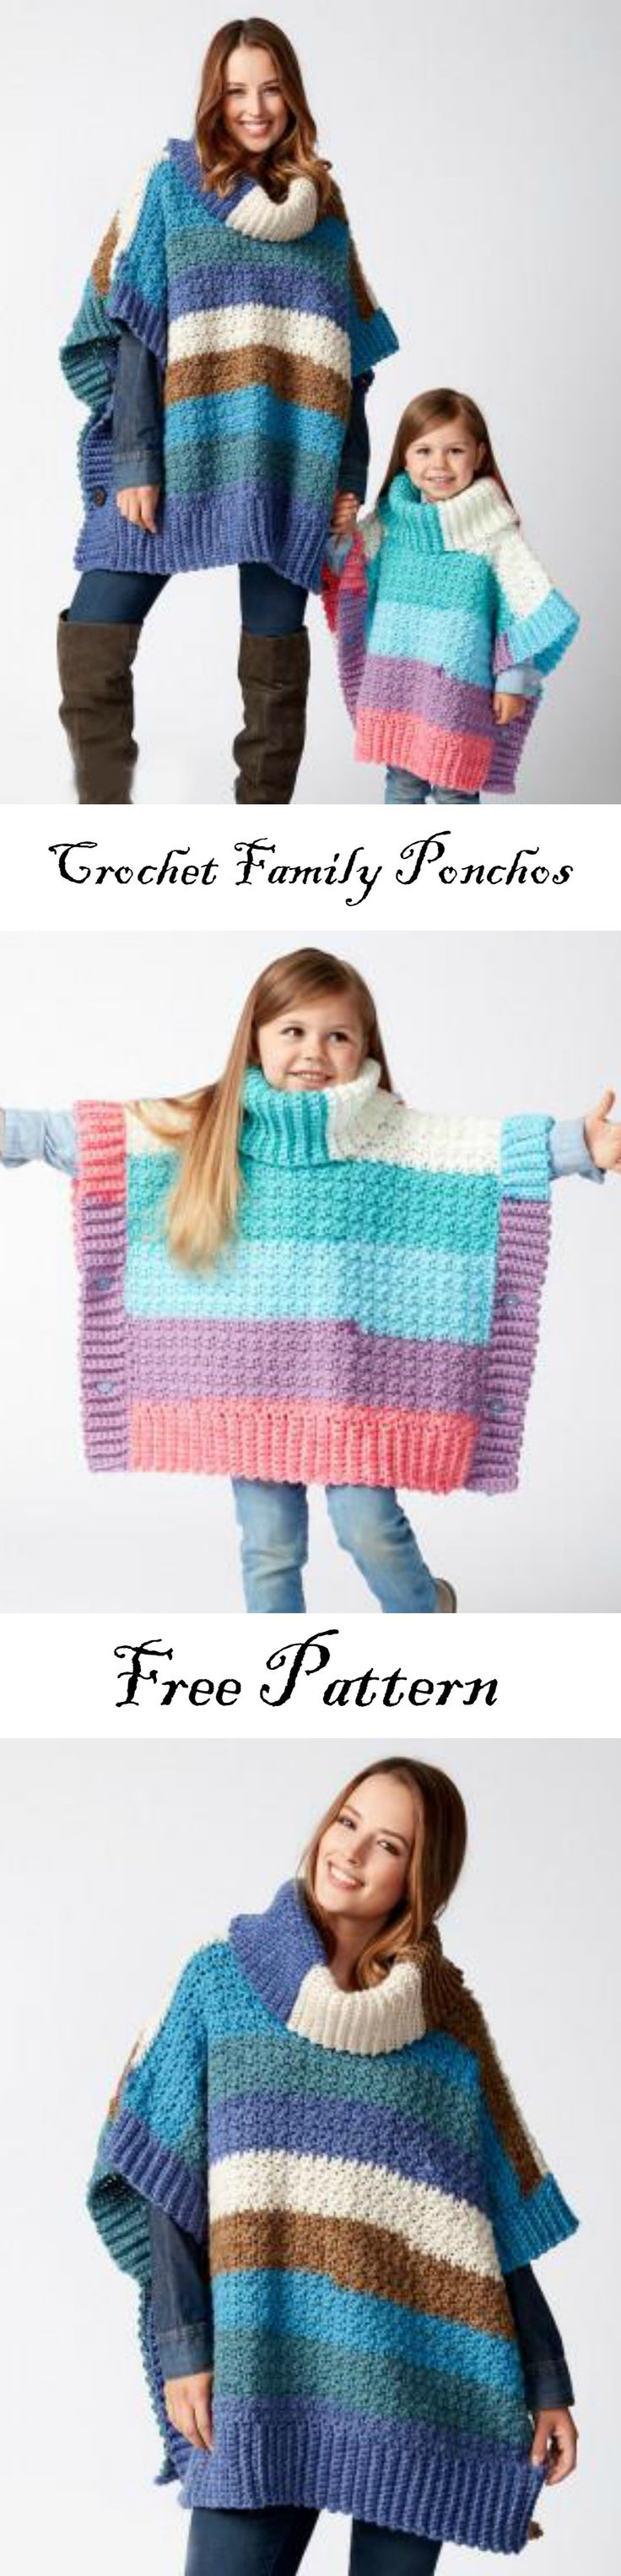 Crochet Family Ponchos